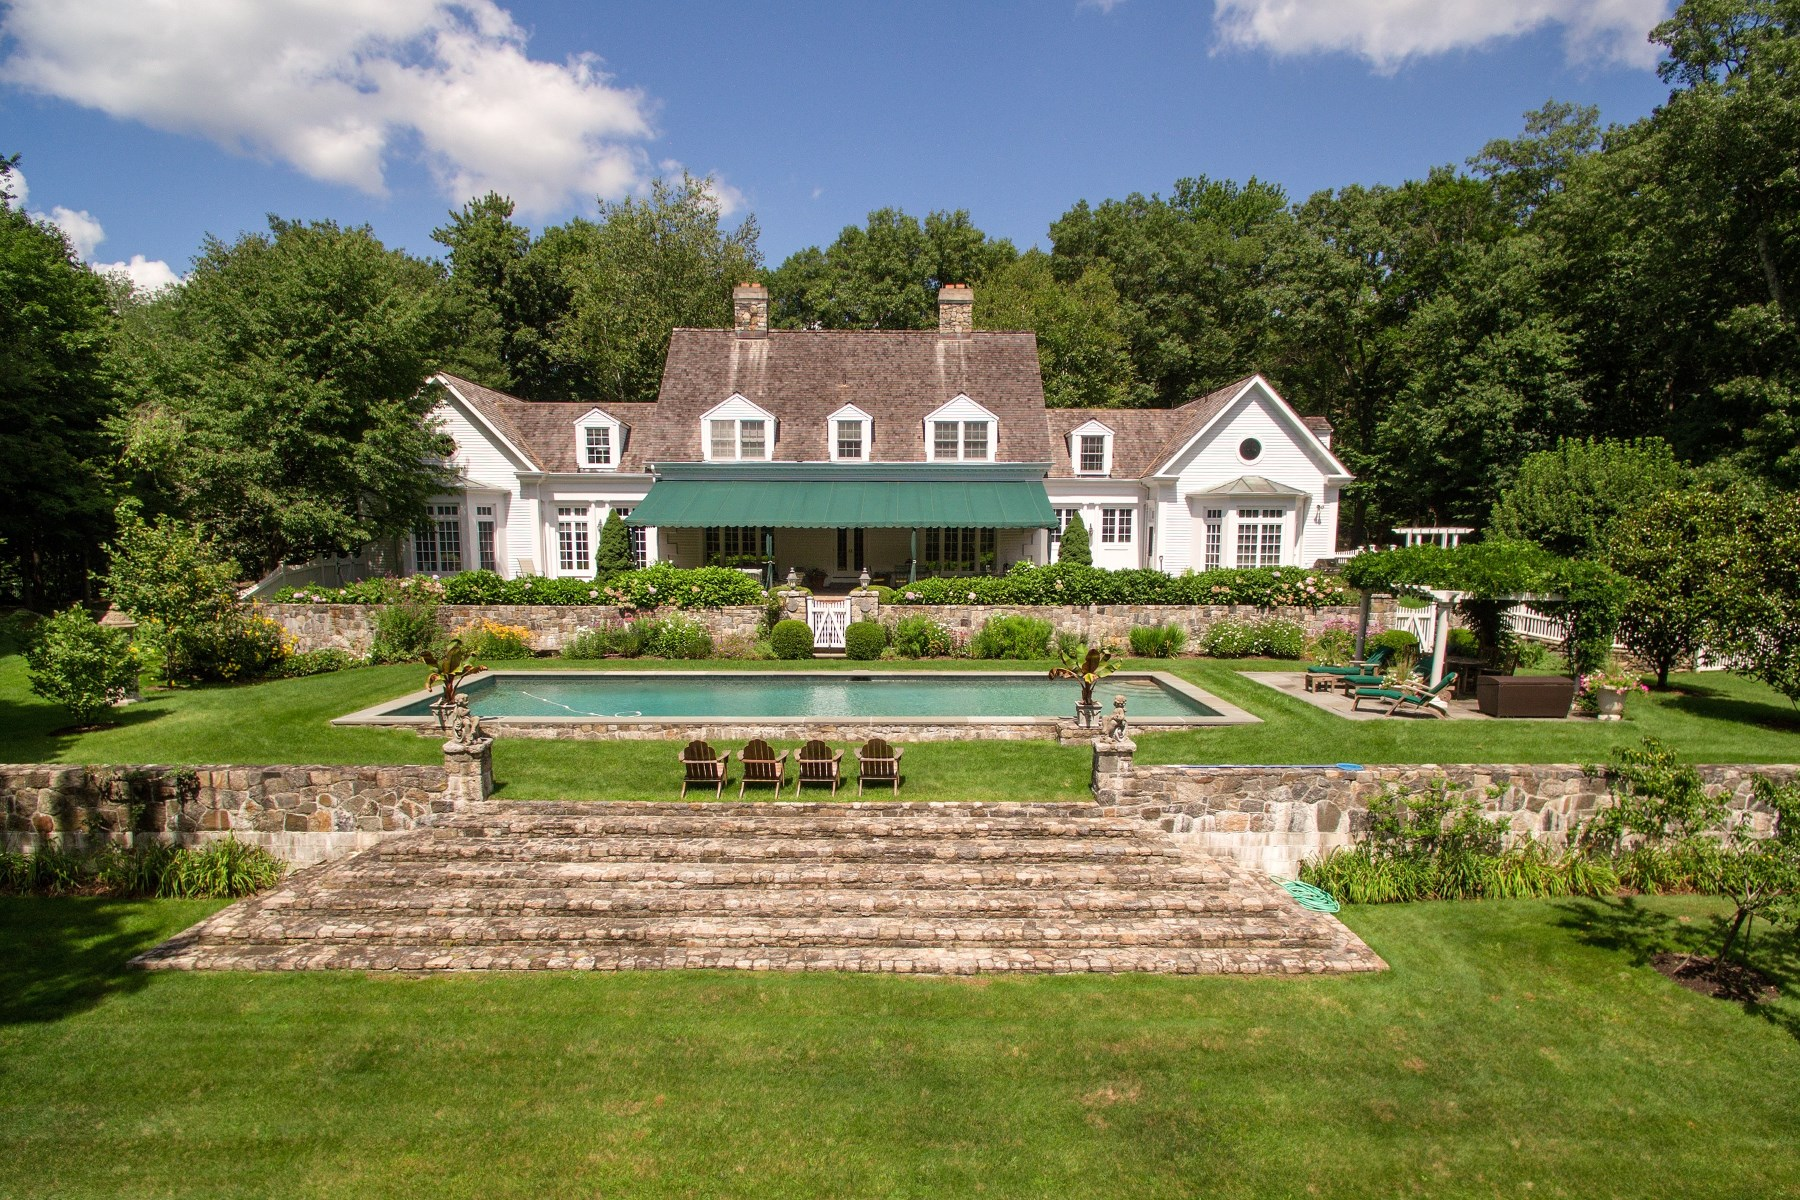 Single Family Home for Sale at 42 Lower Cross Road, Greenwich CT Greenwich, Connecticut, 06831 United States